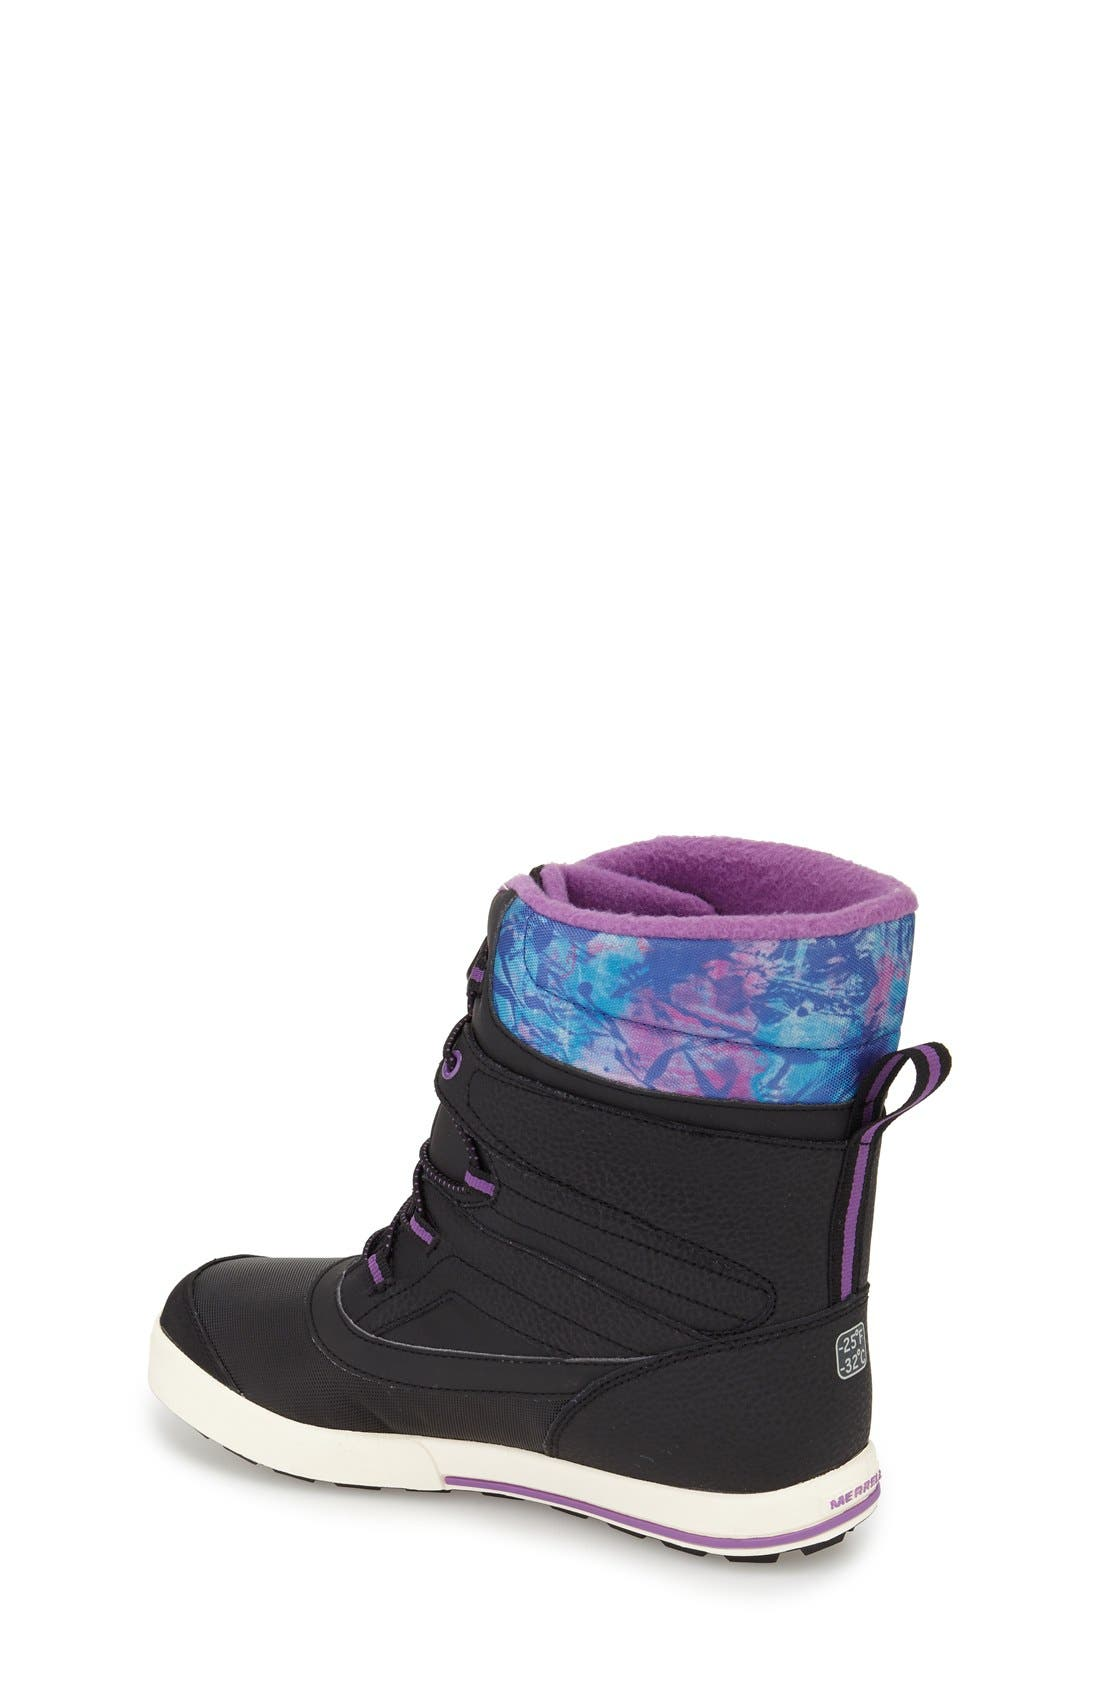 'Snow Bank 2' Waterproof Boot,                             Alternate thumbnail 2, color,                             BLACK/ PRINT/ BERRY LEATHER